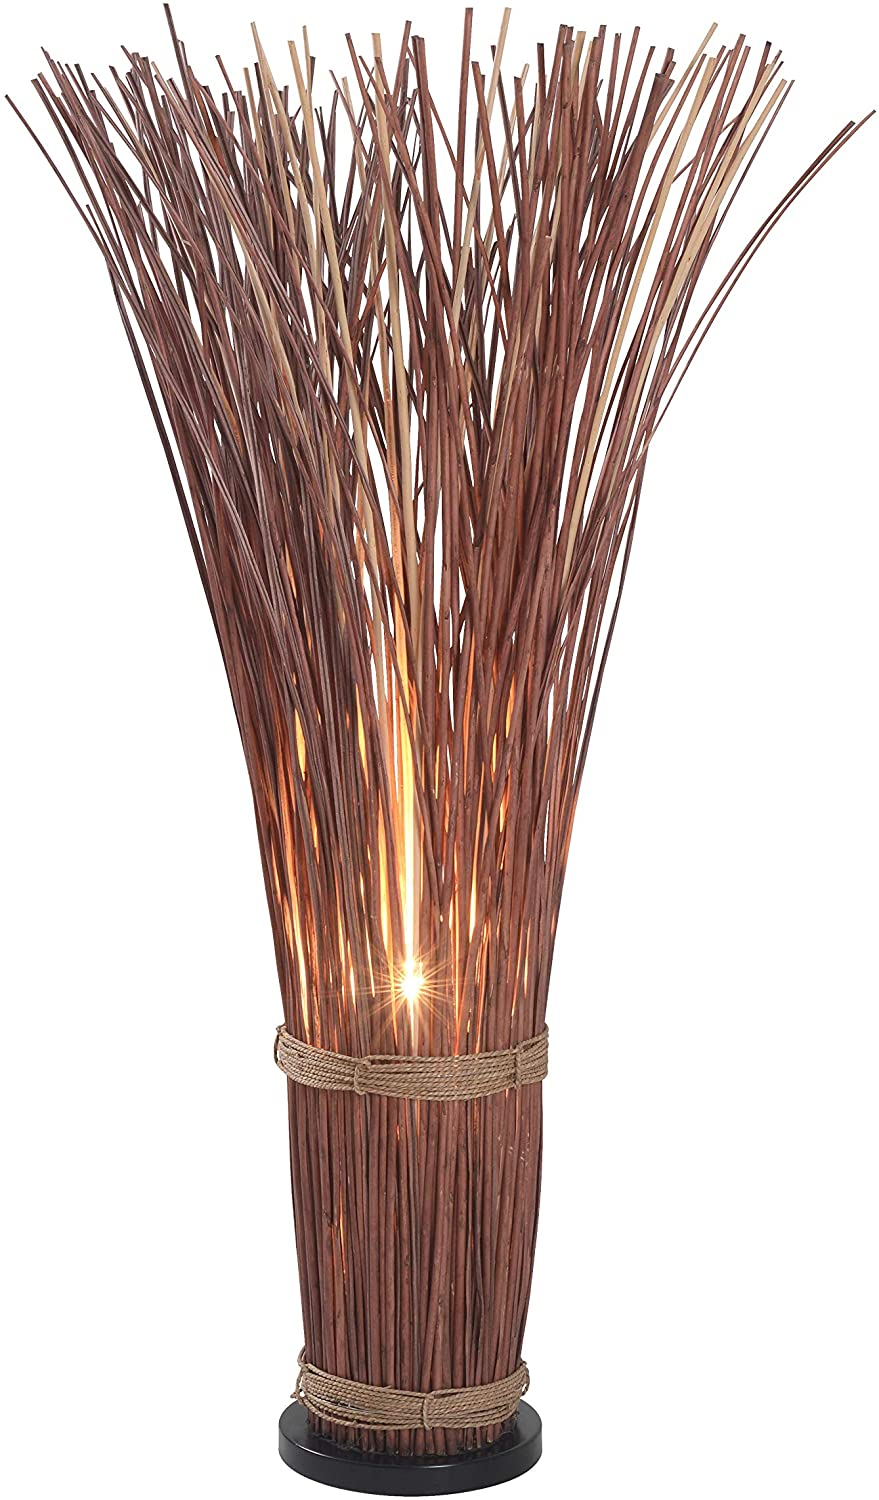 Kenroy-Home-Casual-Floor-Lamp46-Inch-Height-with-Natural-Reed-Finish 15 Unique Artistic Floor Lamps to Light Your Bedroom